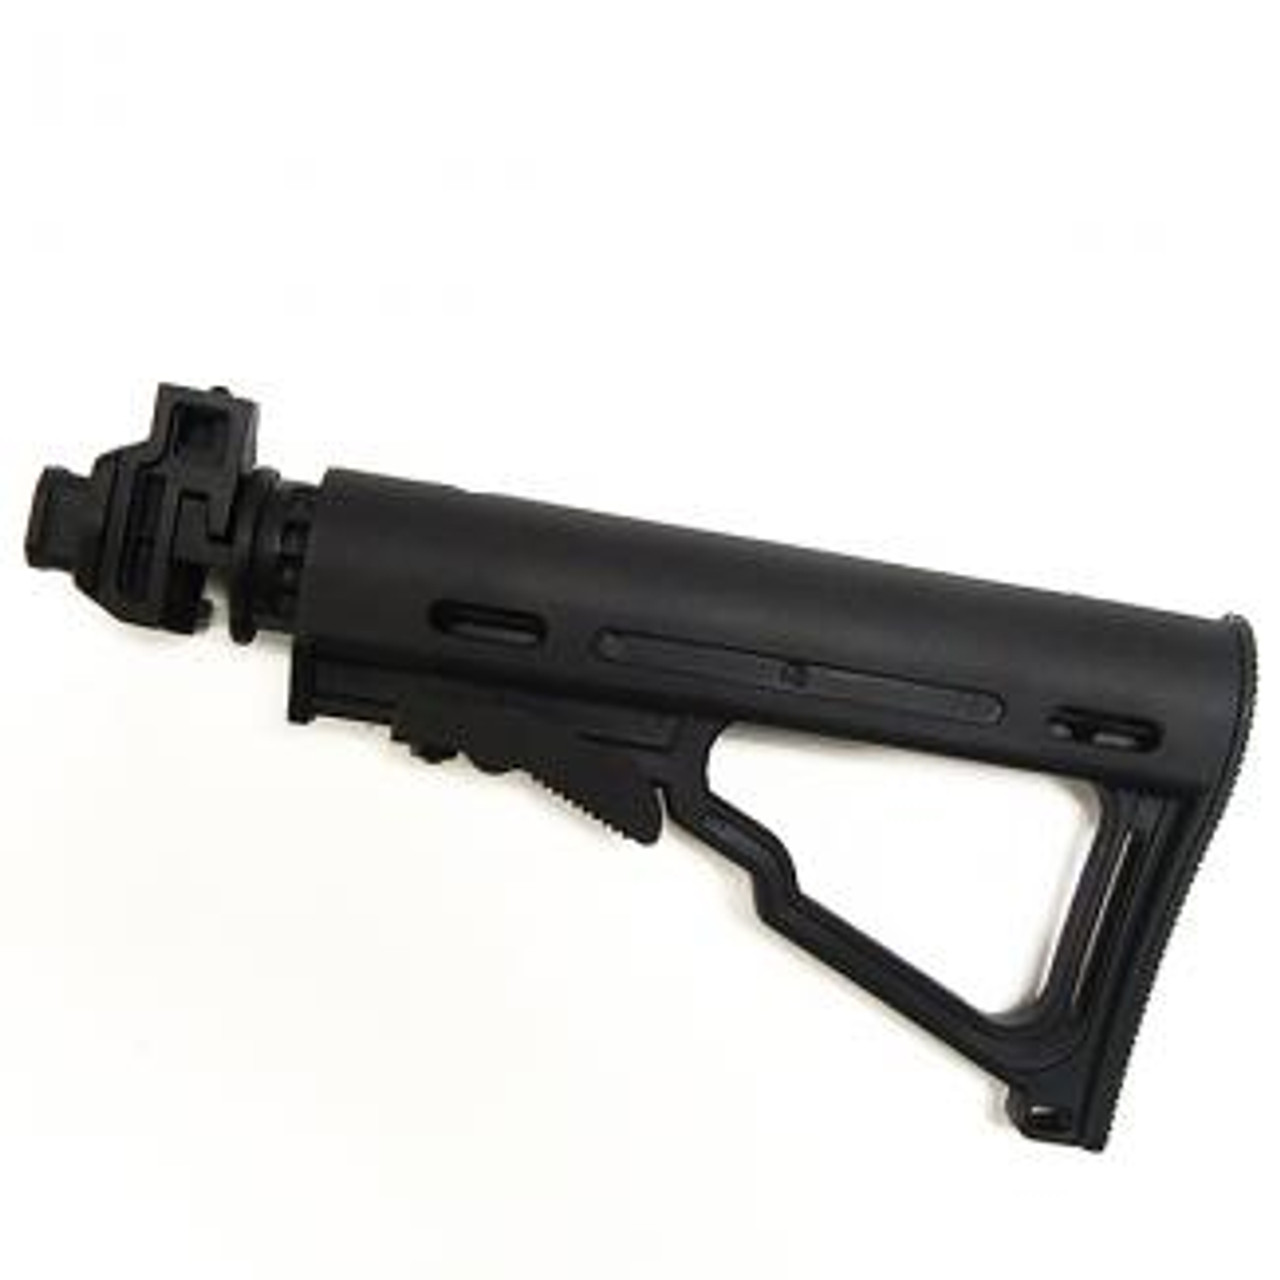 Collapsible Rear Folding Stock